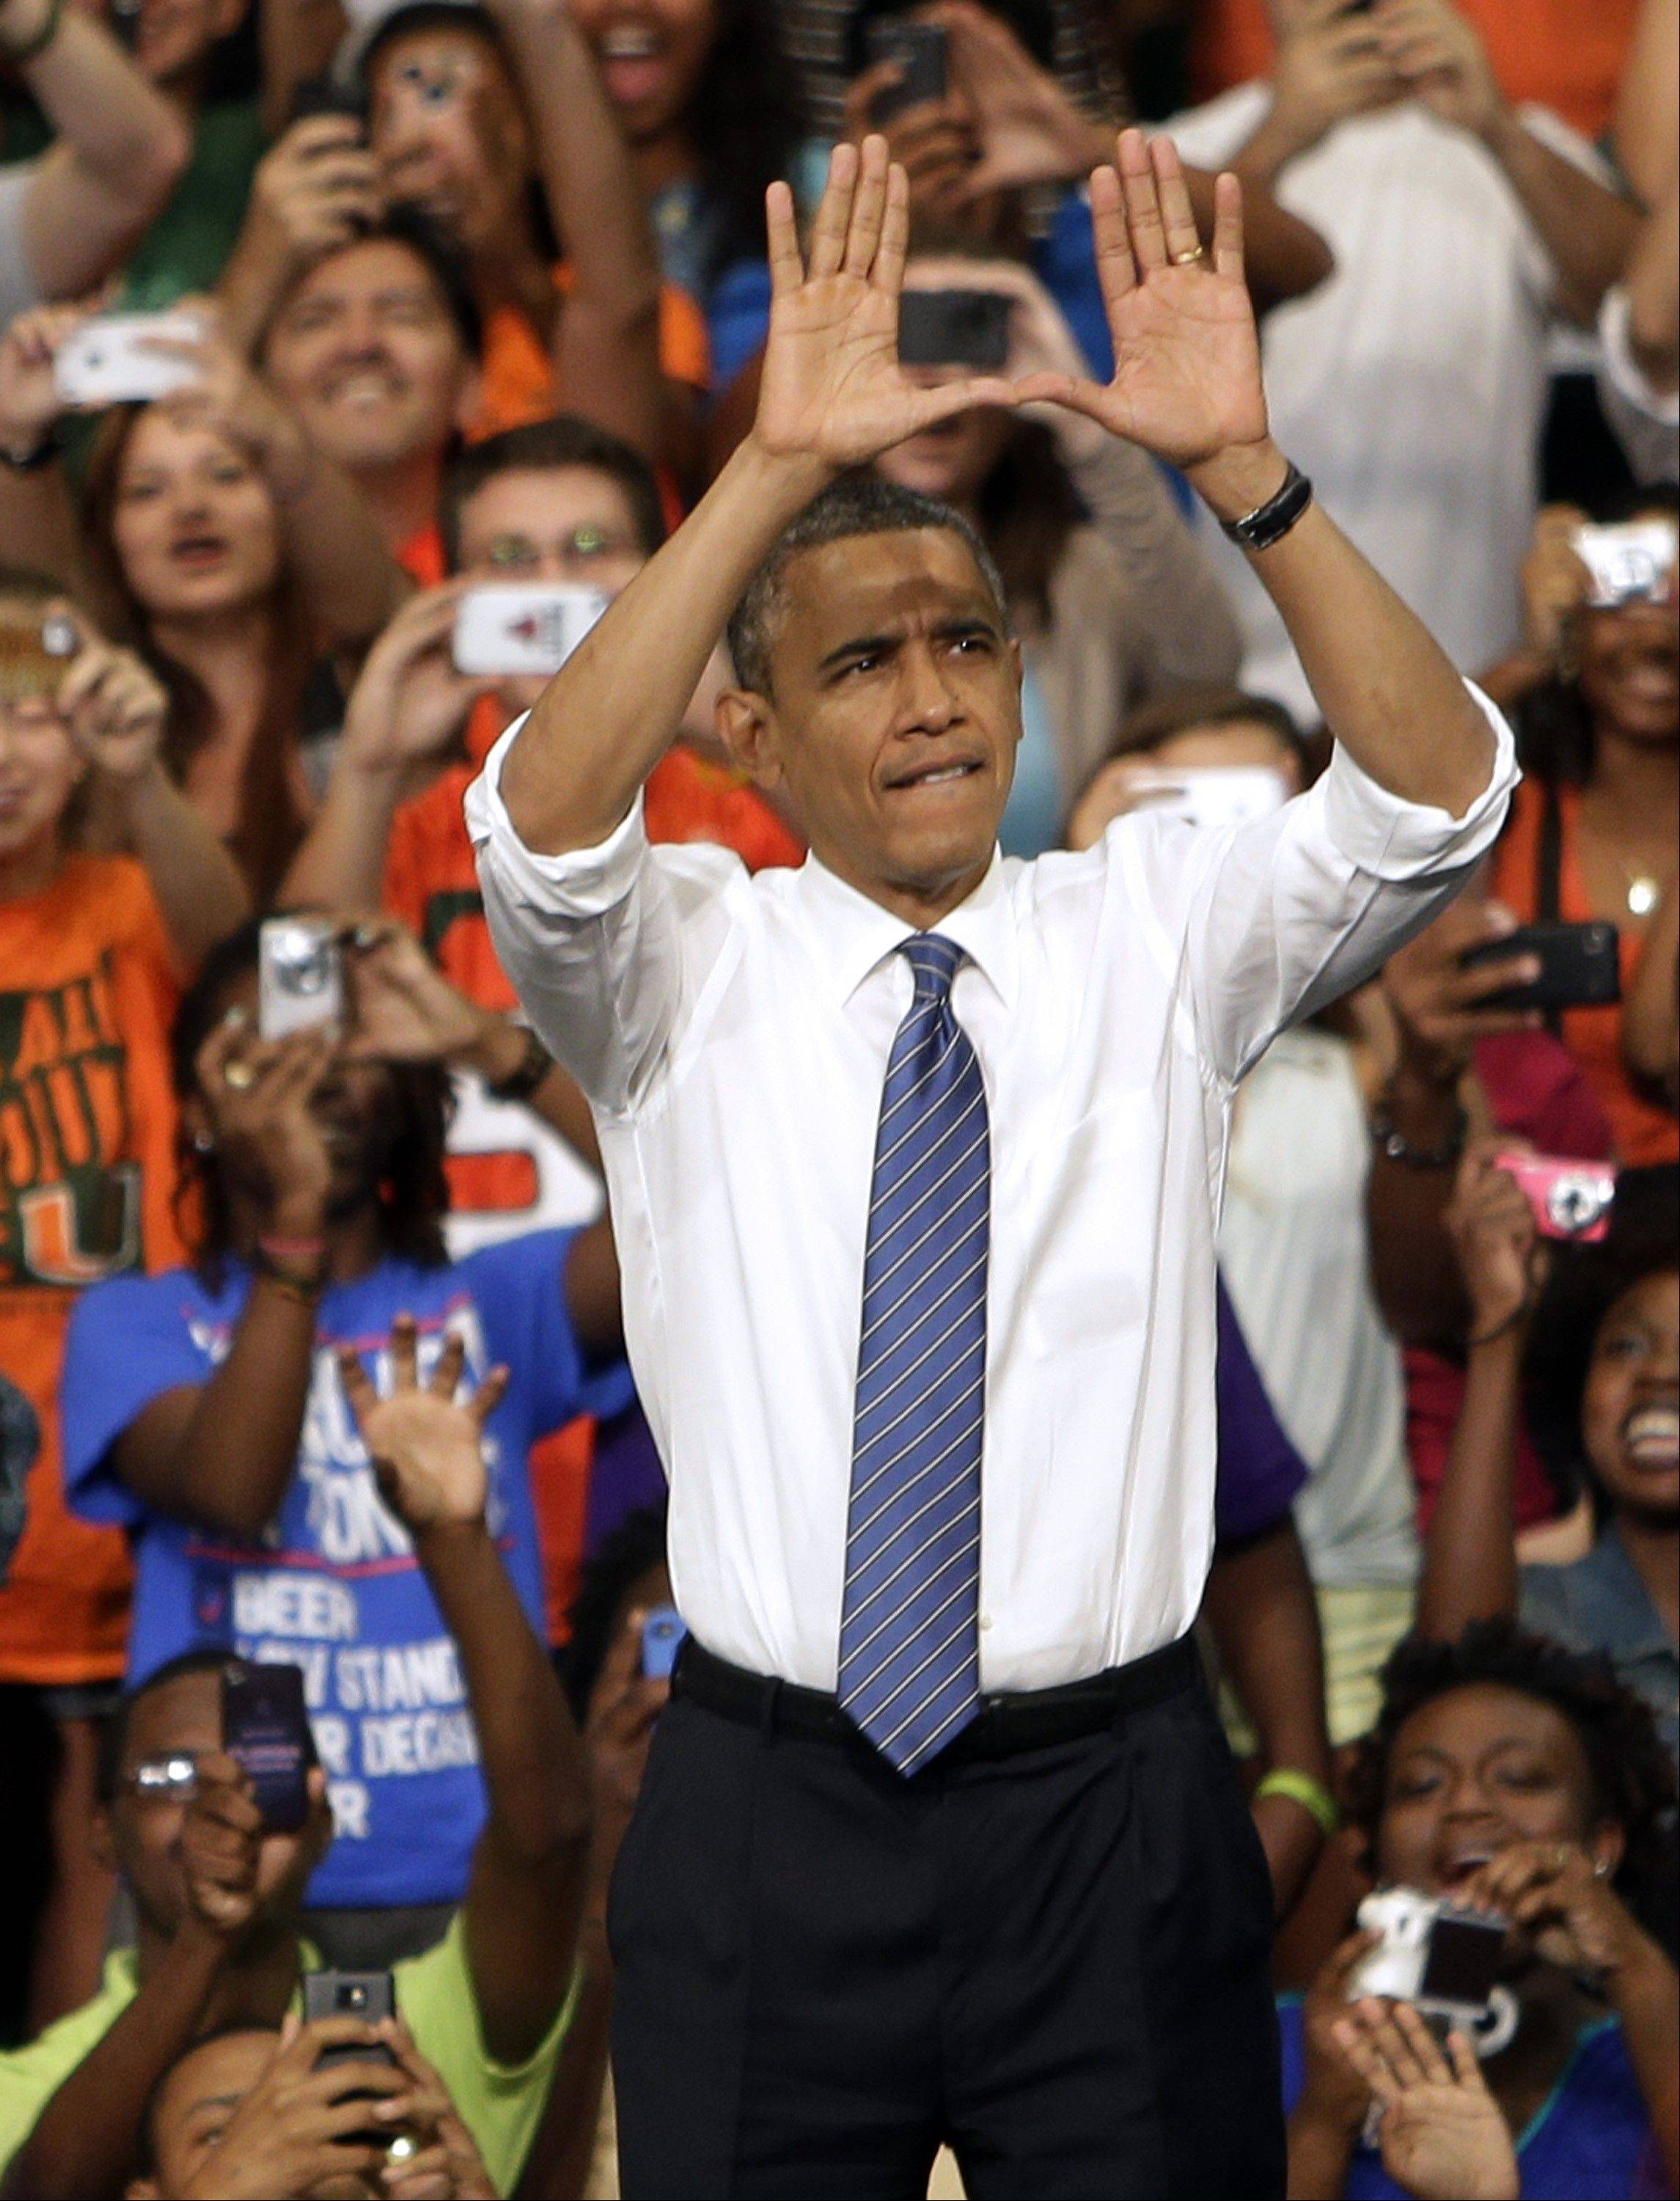 President Barack Obama does the sign of �The U� as he arrives a campaign event at the University of Miami Thursday in Coral Gables, Fla.